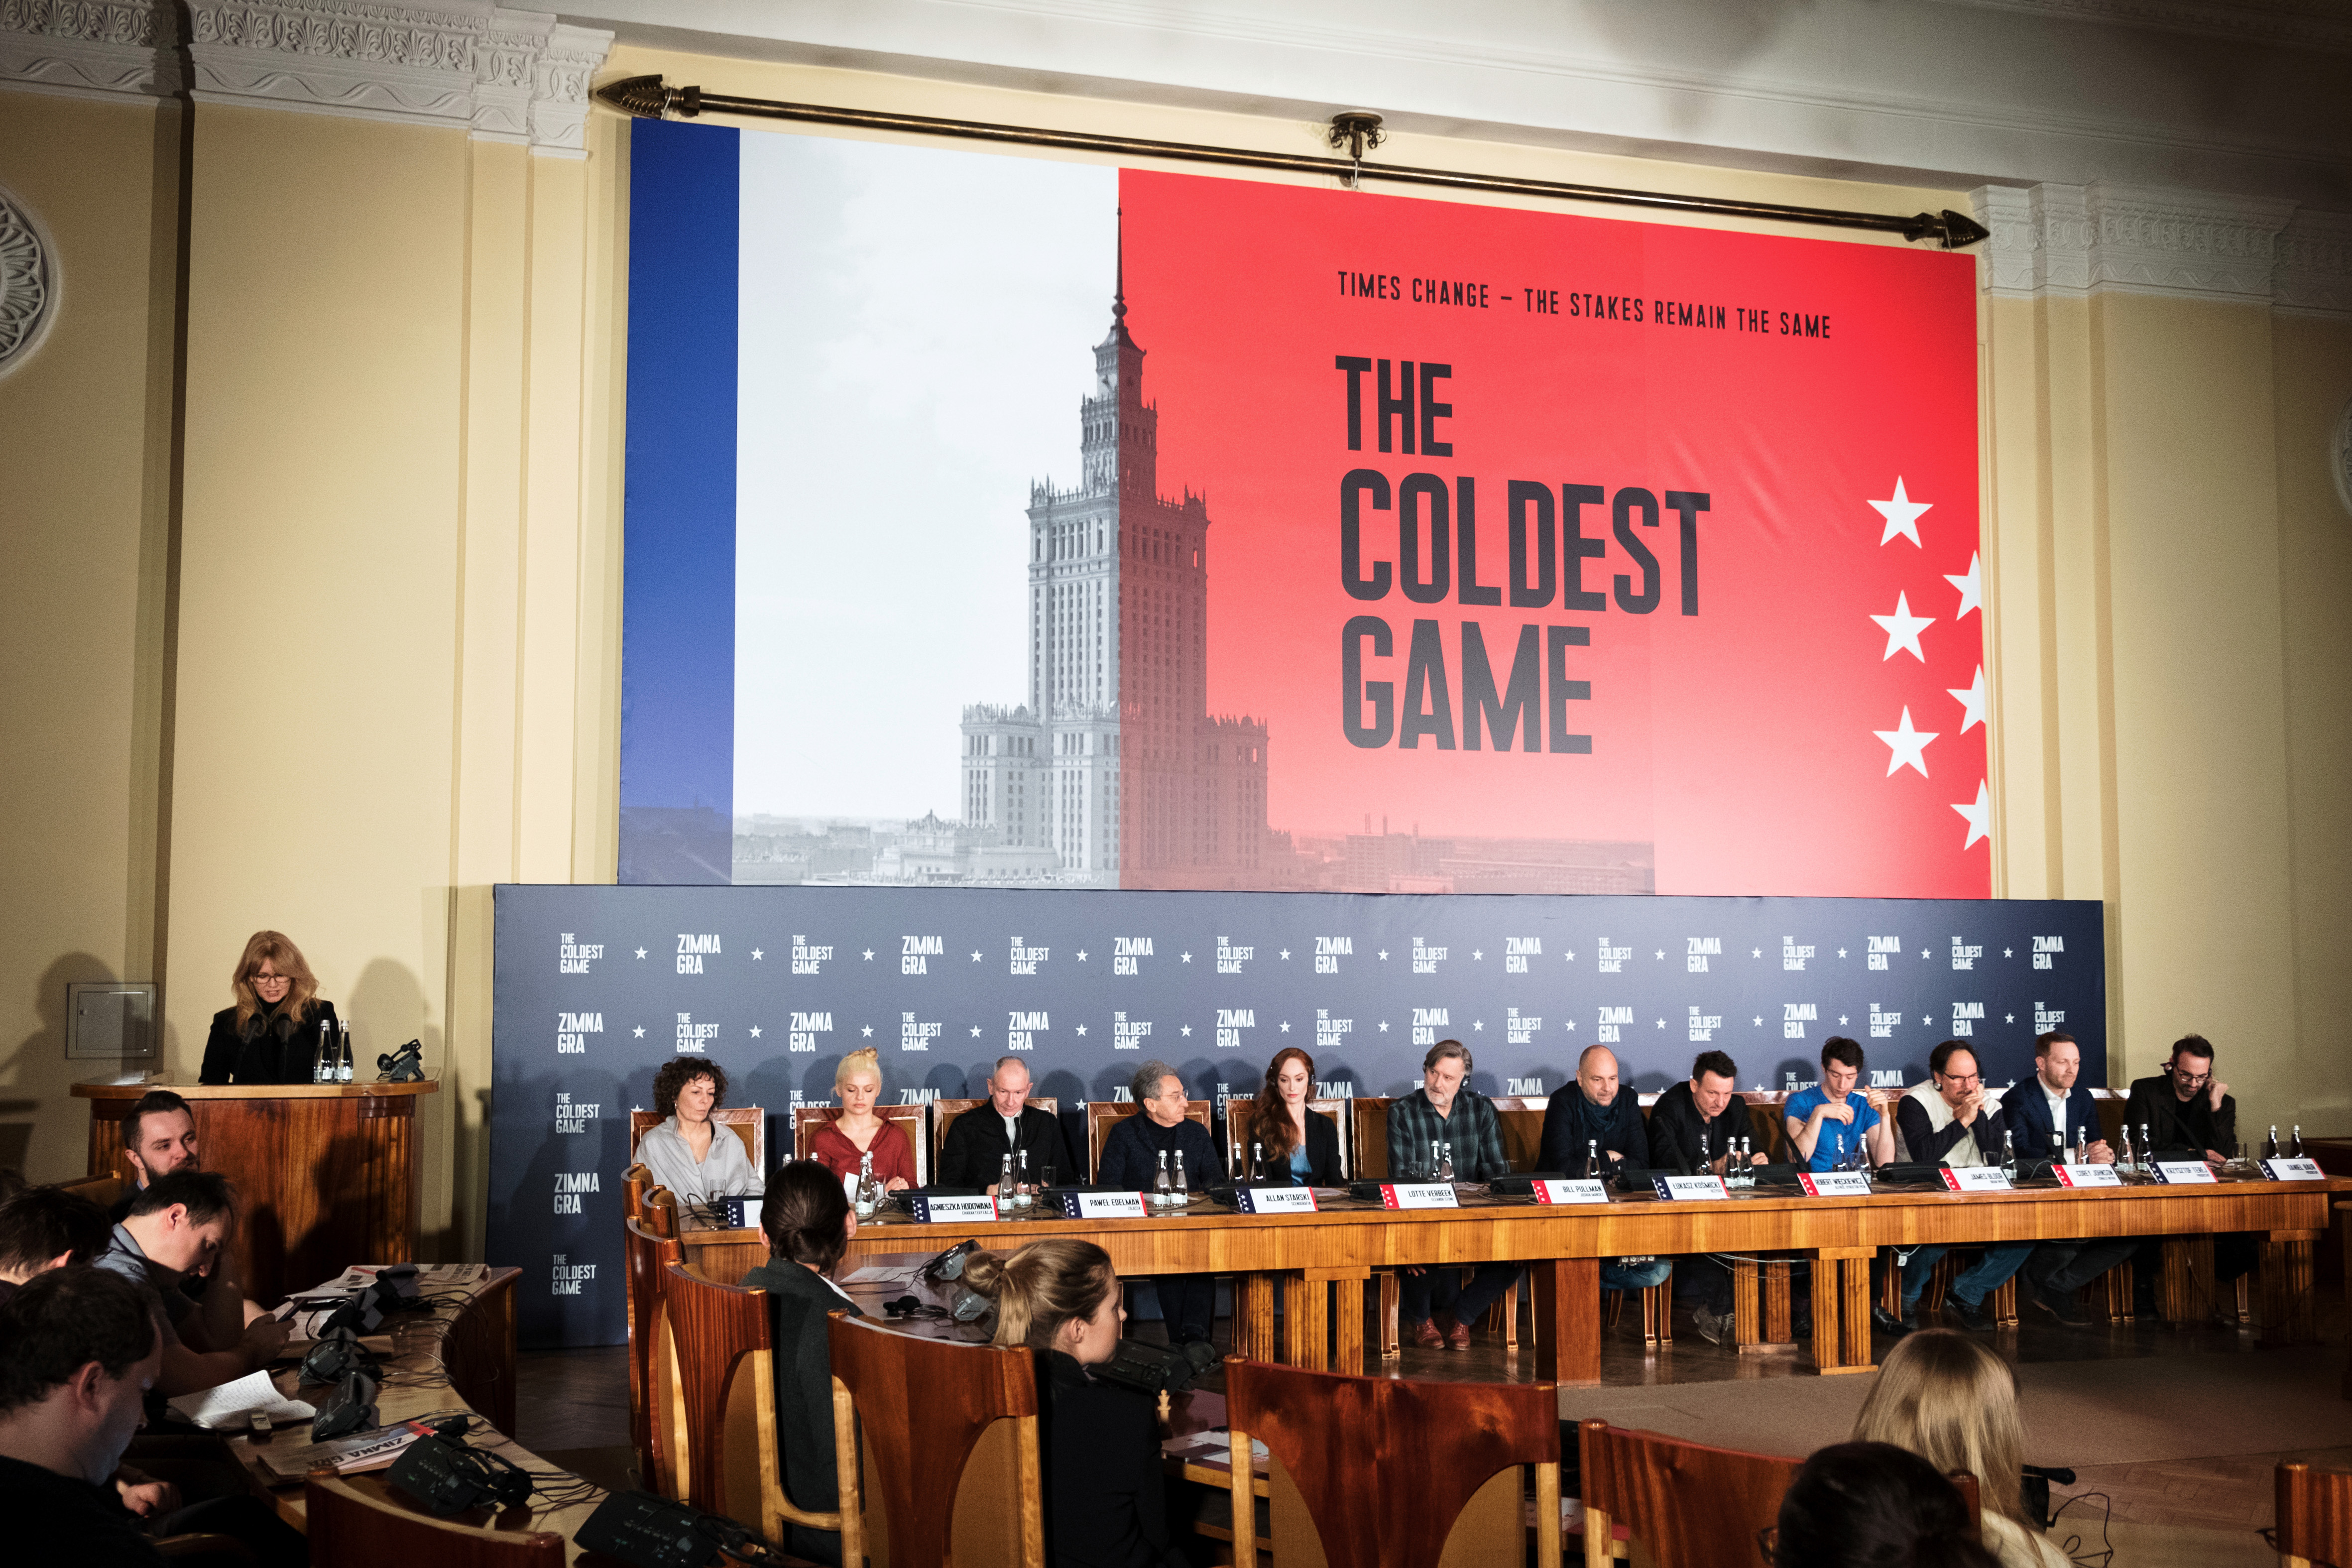 The Coldest Game – Watchout Studio's latest feature is halfway through shooting